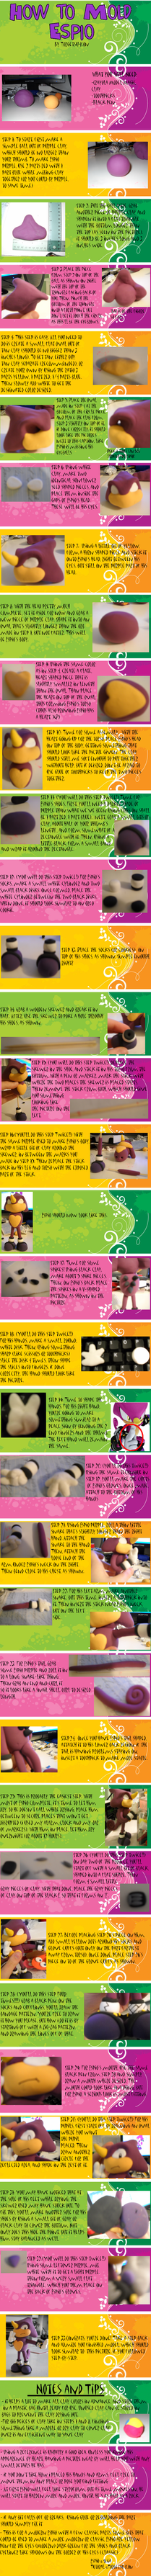 "How to Make Espio ""Clay"" by Torgetsu-Kon"